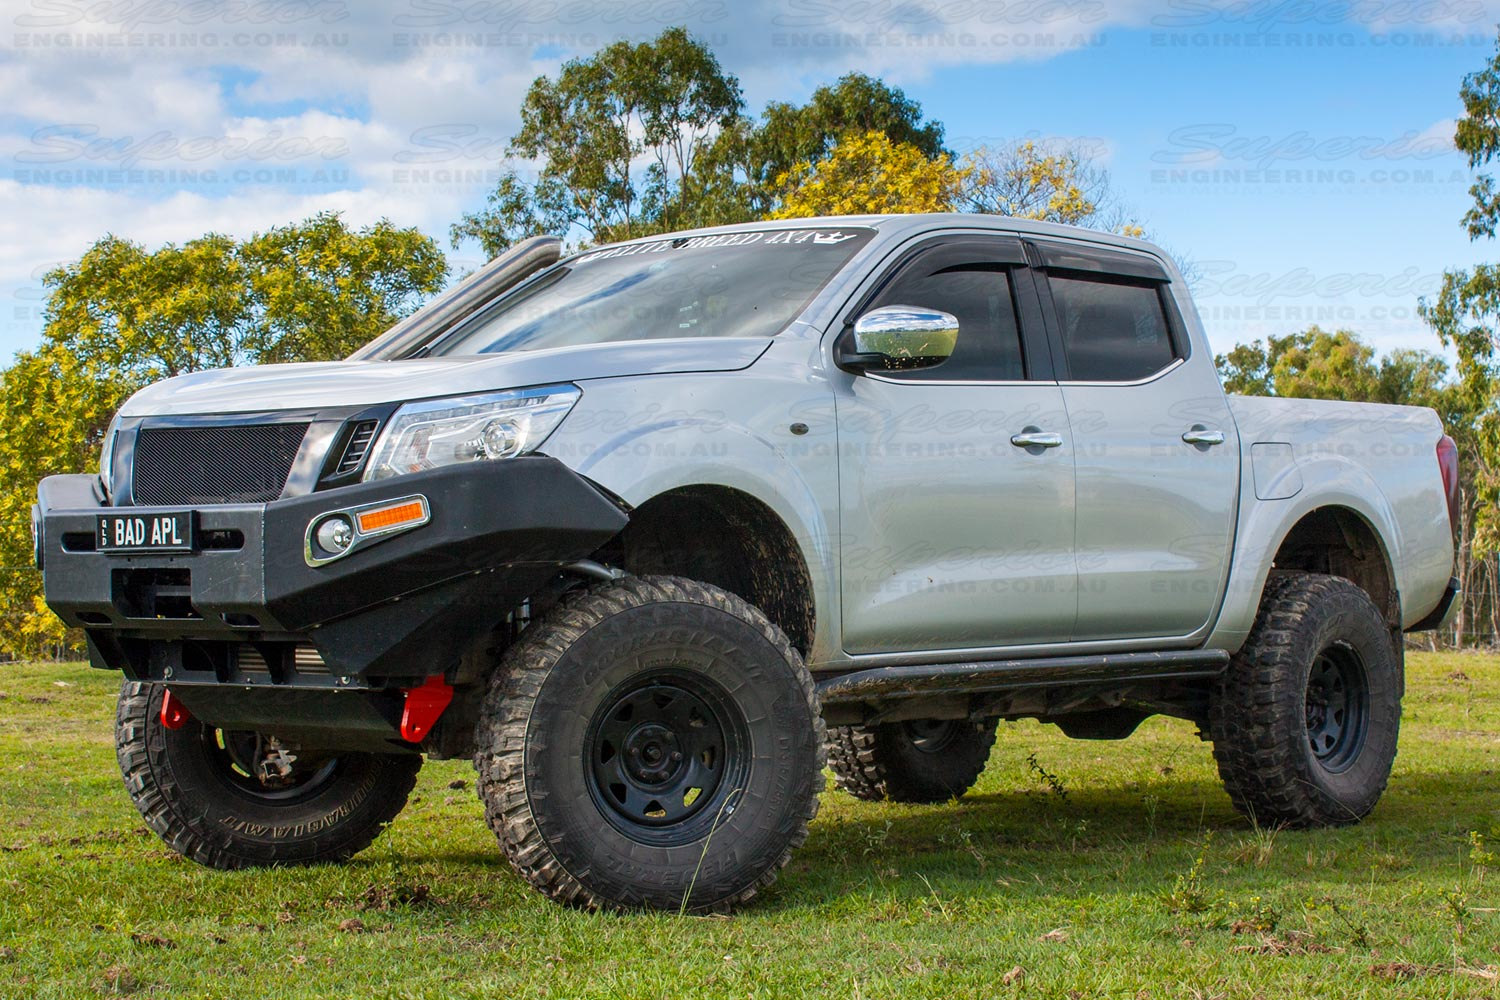 Rated Towing Point Kit Nissan Navara Np300 D23 4x4 Accessories Online Fuse Box A Pair Of Superior Heavy Duty Points Fitted To The Front End At Main Engineering Burpengary Warehouse